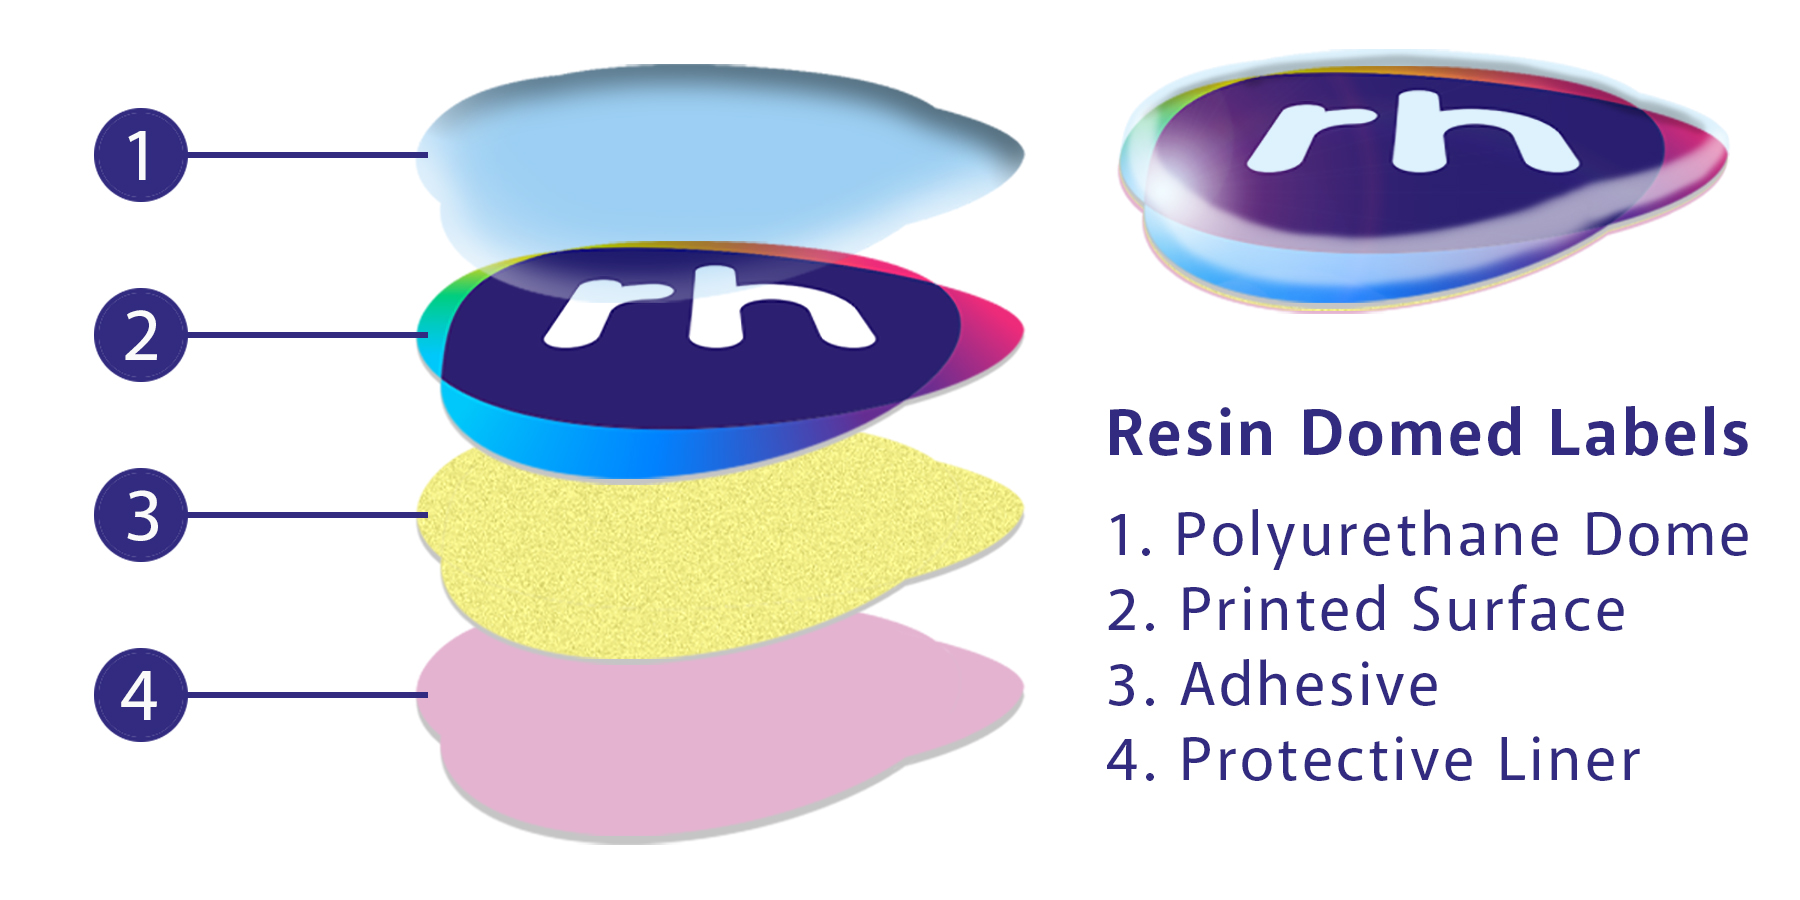 A cross section of the layers used to form a resin domed label or sticker